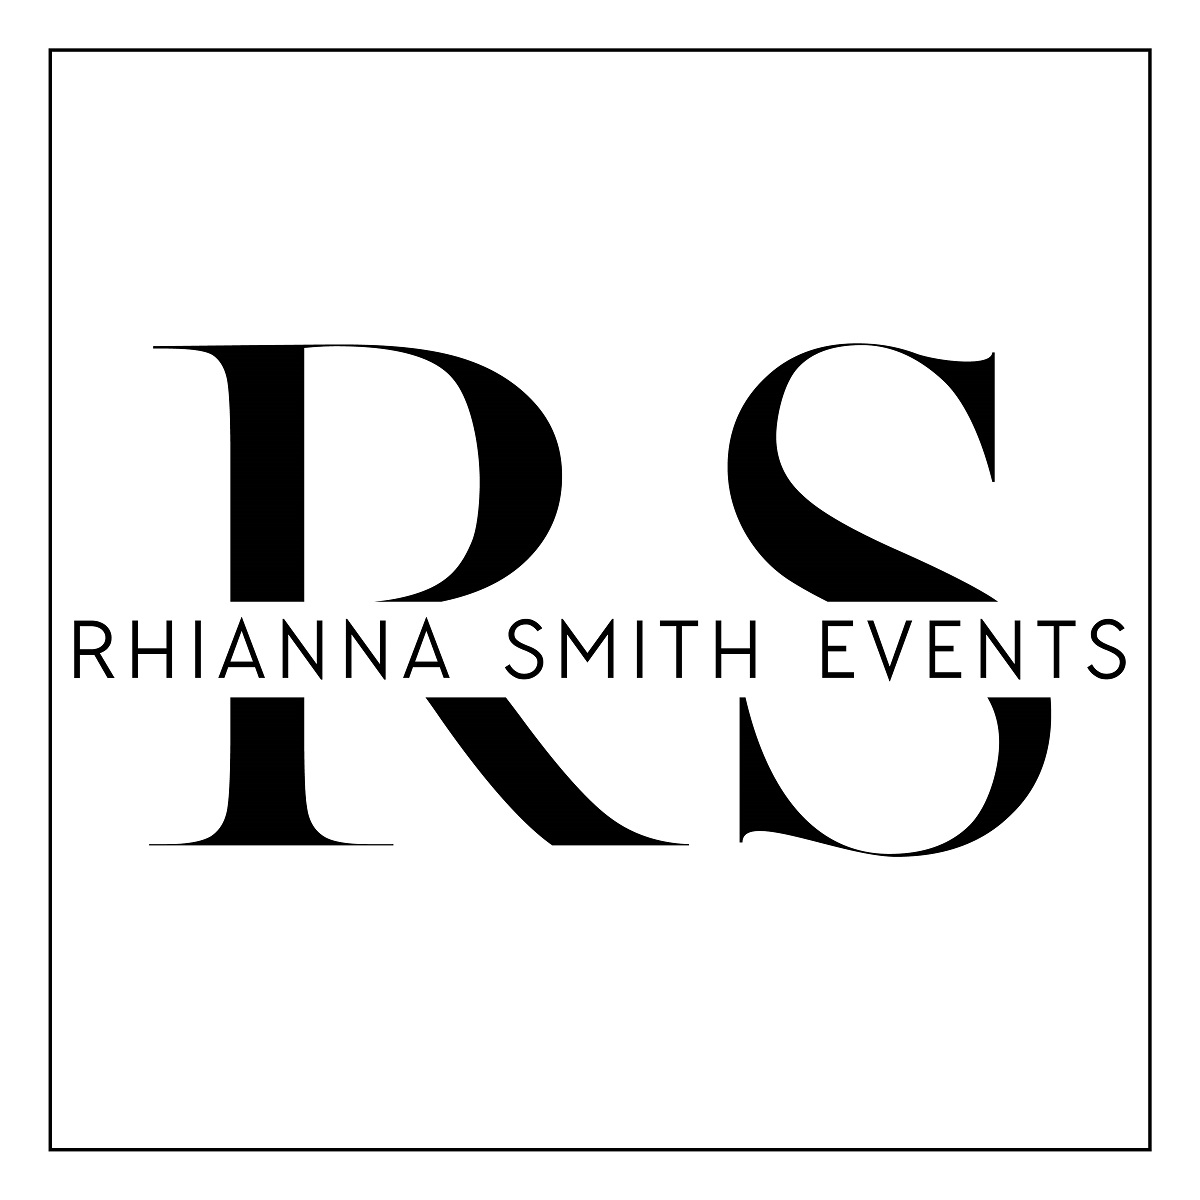 Rhianna Smith Events